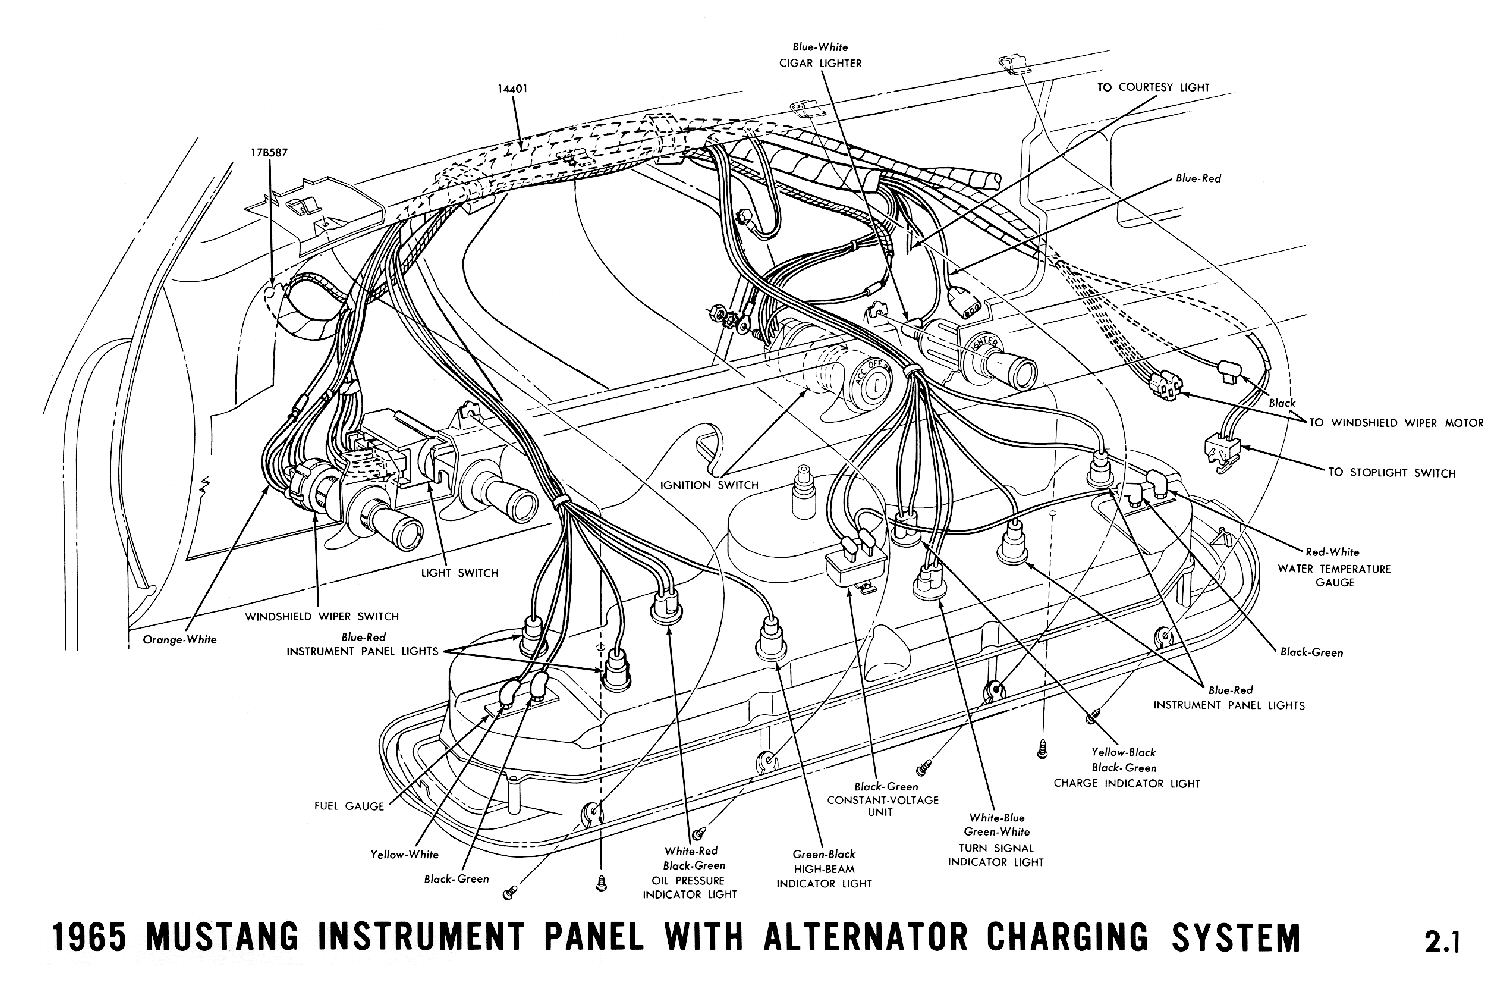 1965 mustang wiring diagrams average joe restoration rh averagejoerestoration com 1966 mustang engine bay wiring diagram 1966 mustang engine wiring diagram